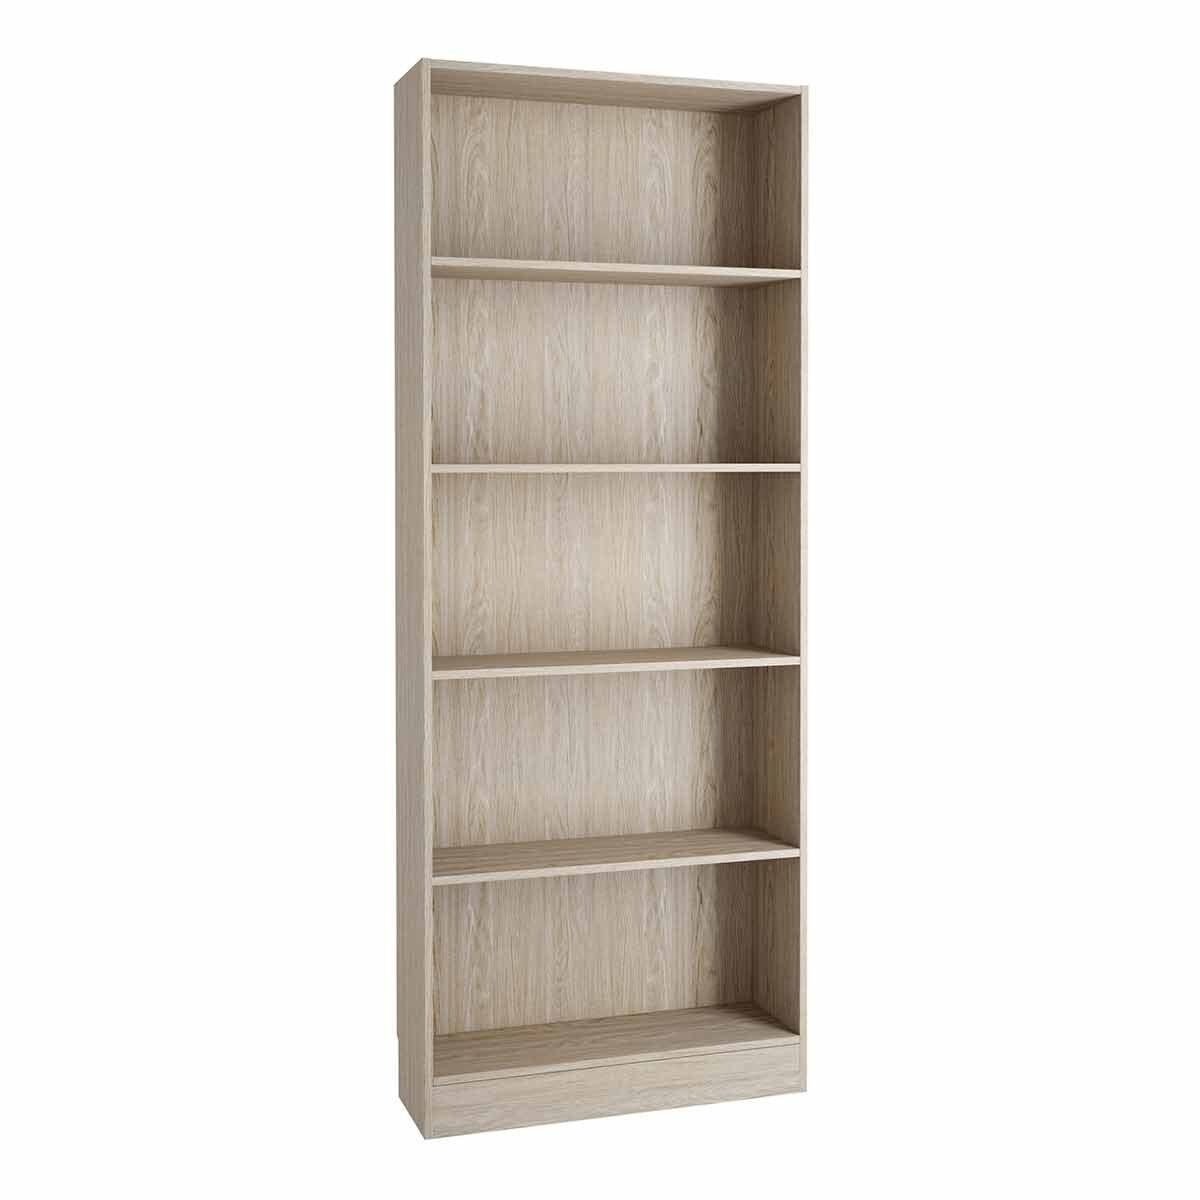 Basic Tall Wide Bookcase with 4 Shelves